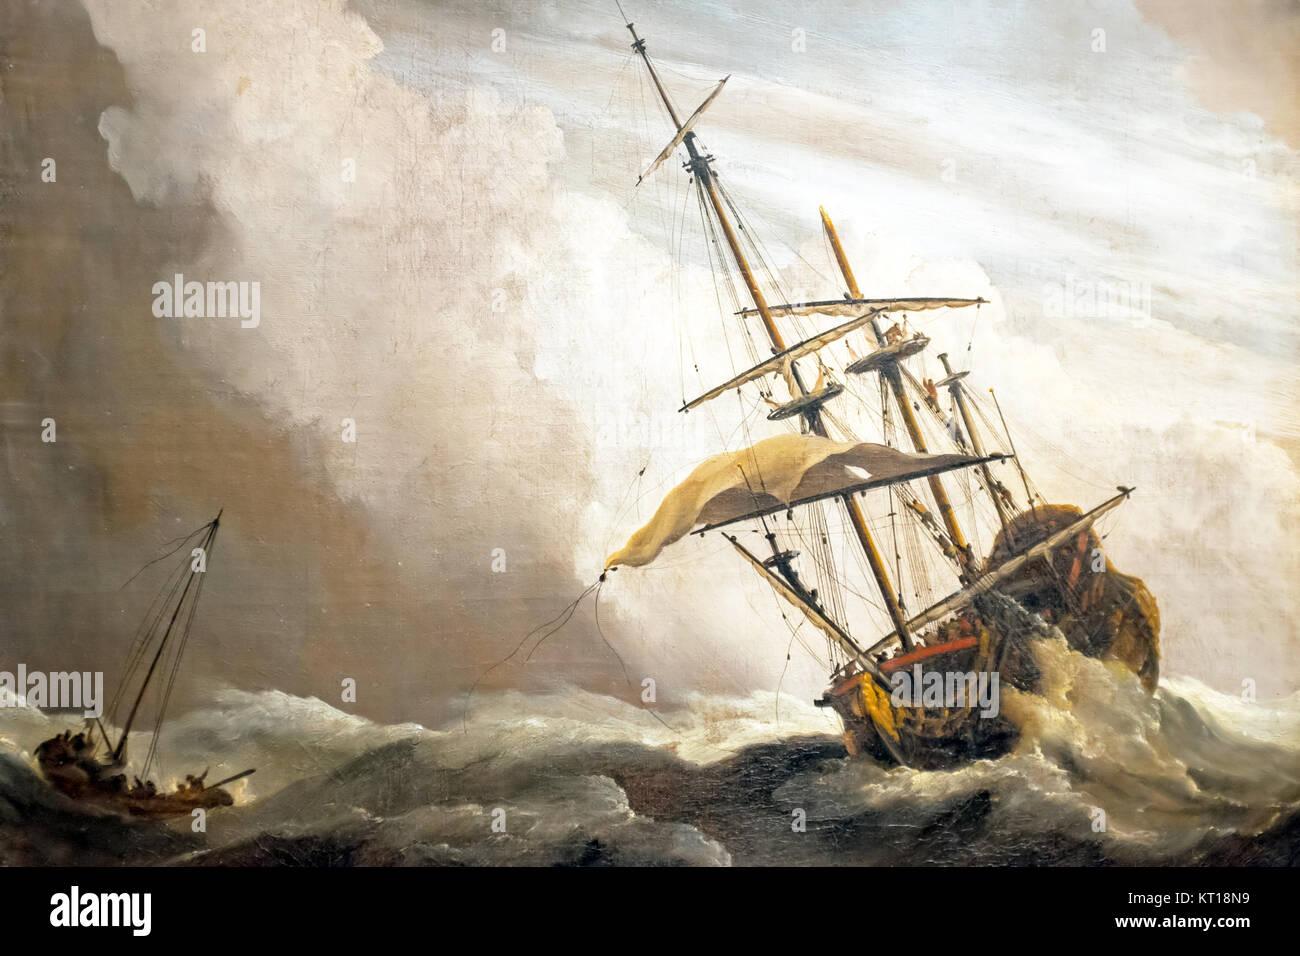 A Ship on the High Seas Caught by a Squall, Known as 'The Gust', Willem van de Velde (II), c. 1680 - Stock Image